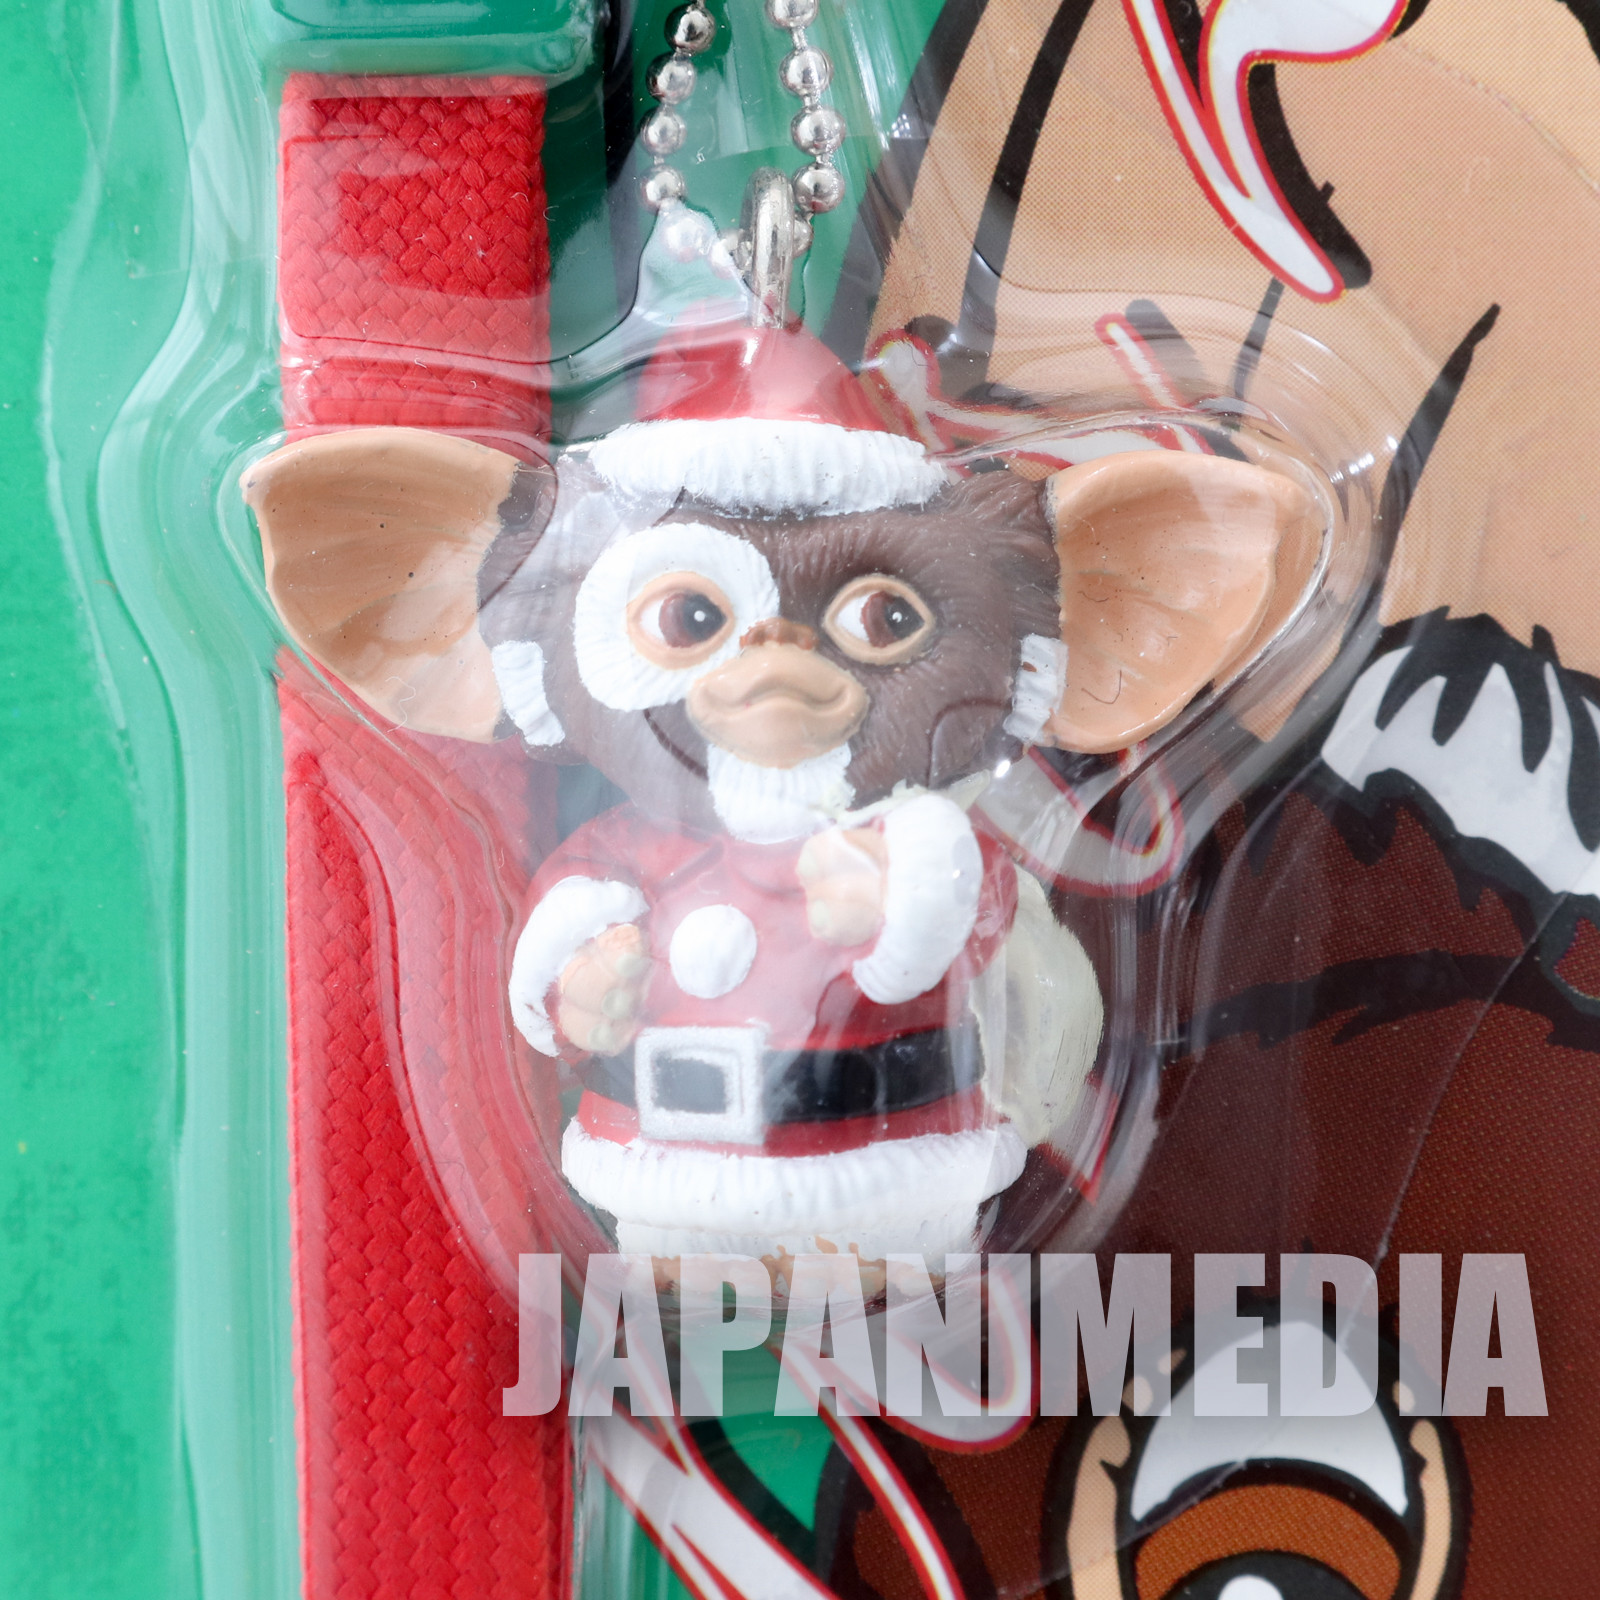 Gremlins 2 The New Batch Gizmo Santa Figure Mobile Strap Jun Planning JAPAN